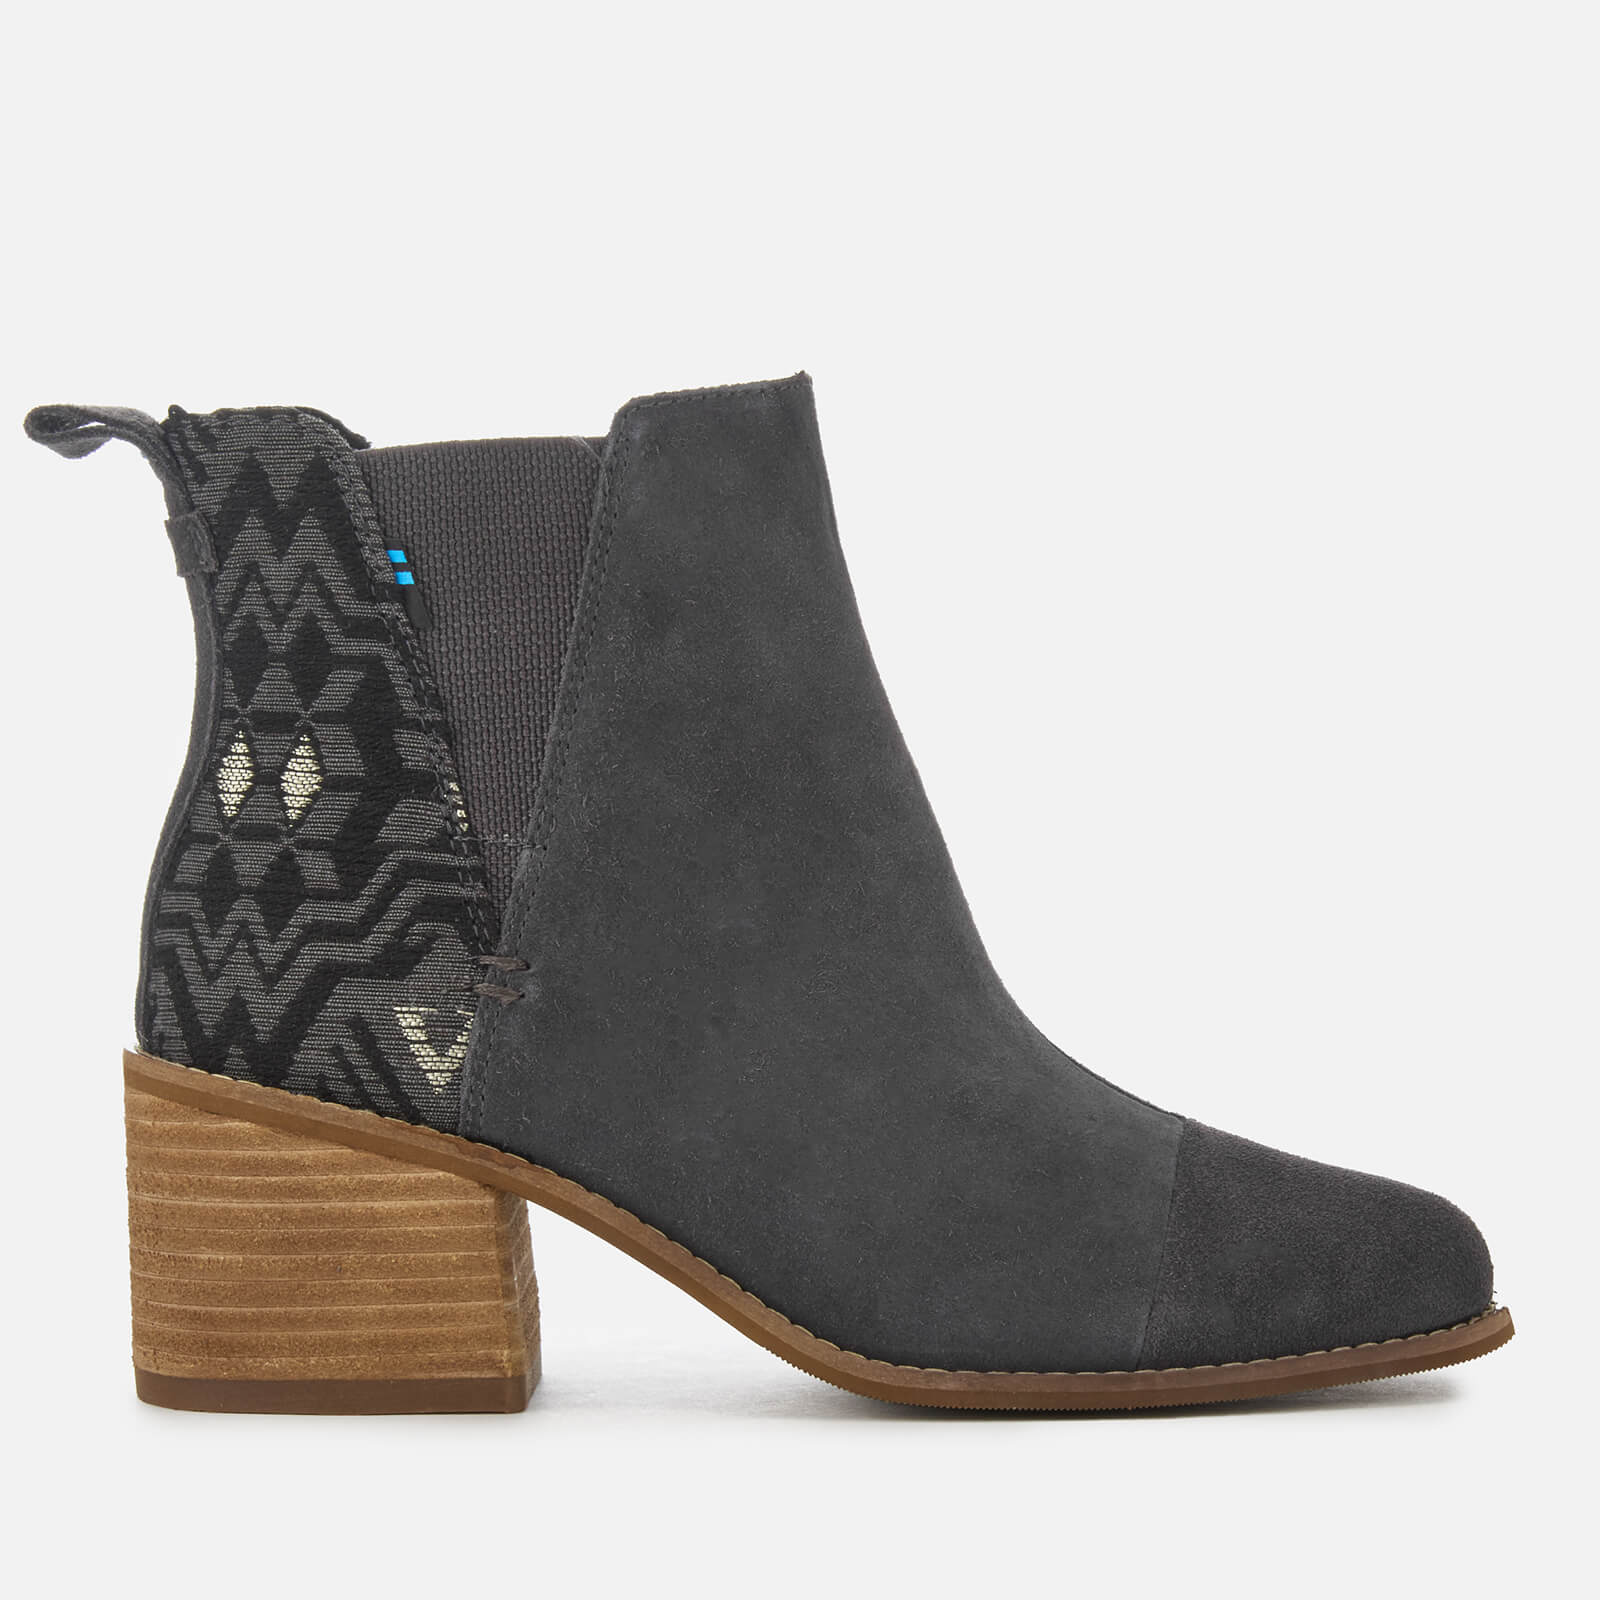 bfe630fa96a TOMS Women s Esme Suede Metallic Jacquard Heeled Chelsea Boots - Forged  Iron Clothing